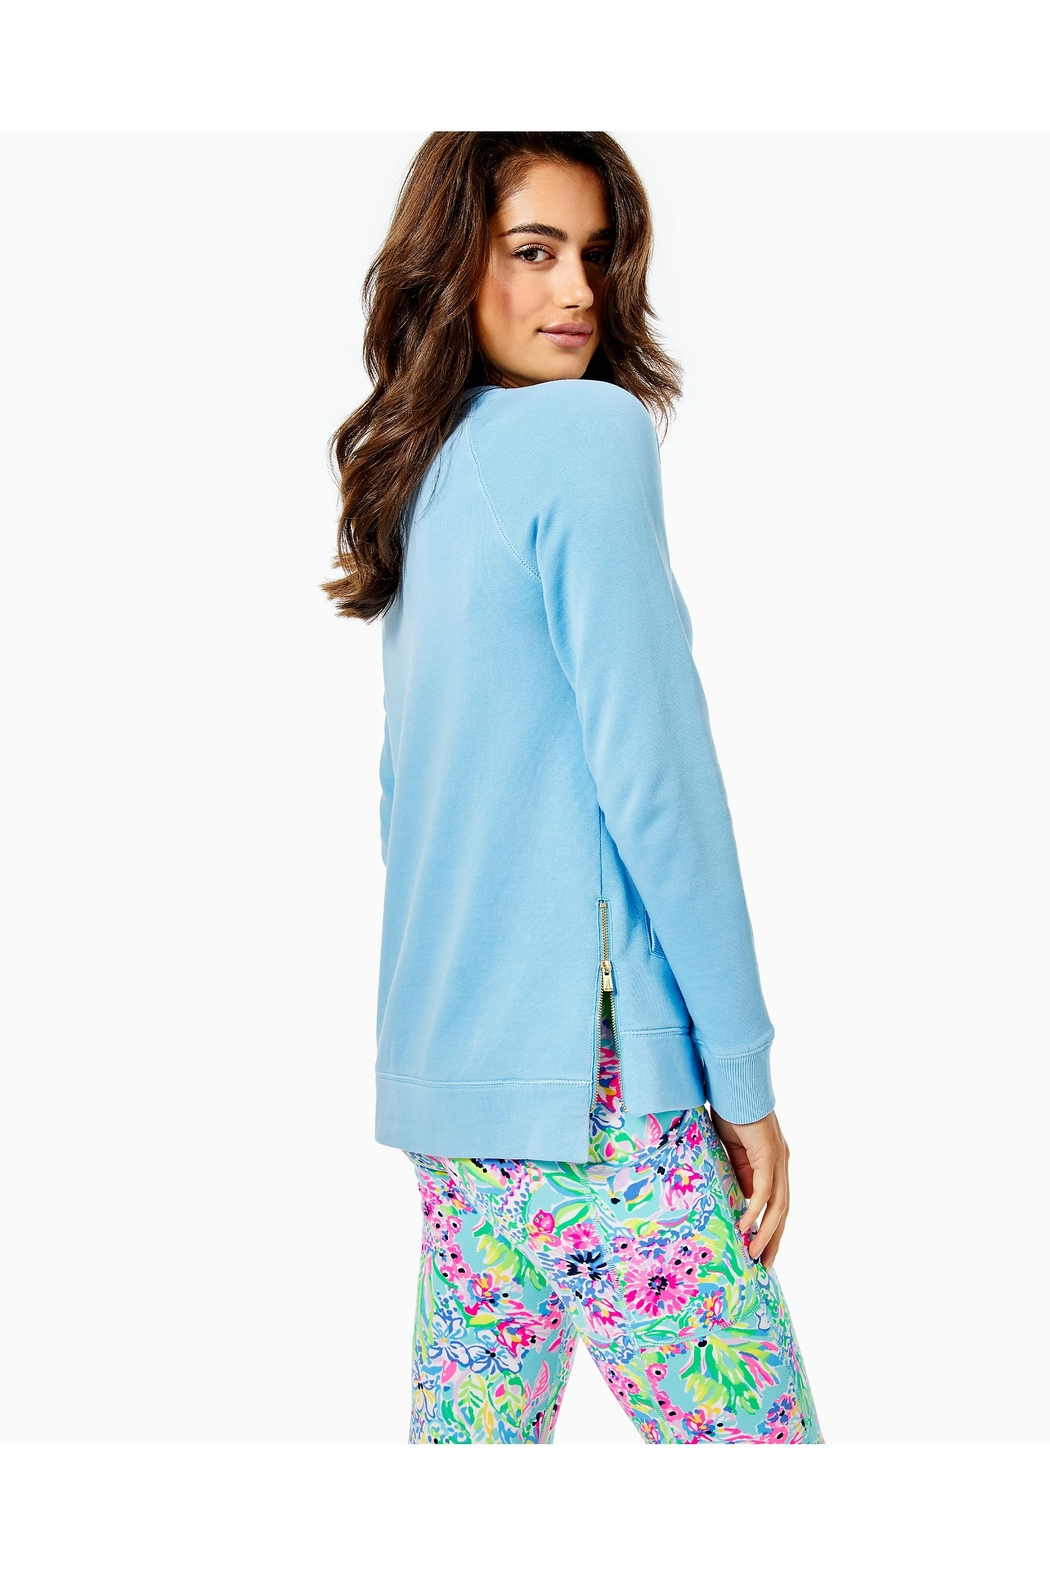 Lilly Pulitzer Luxletic Beach-Comber Pullover - Front Full Image